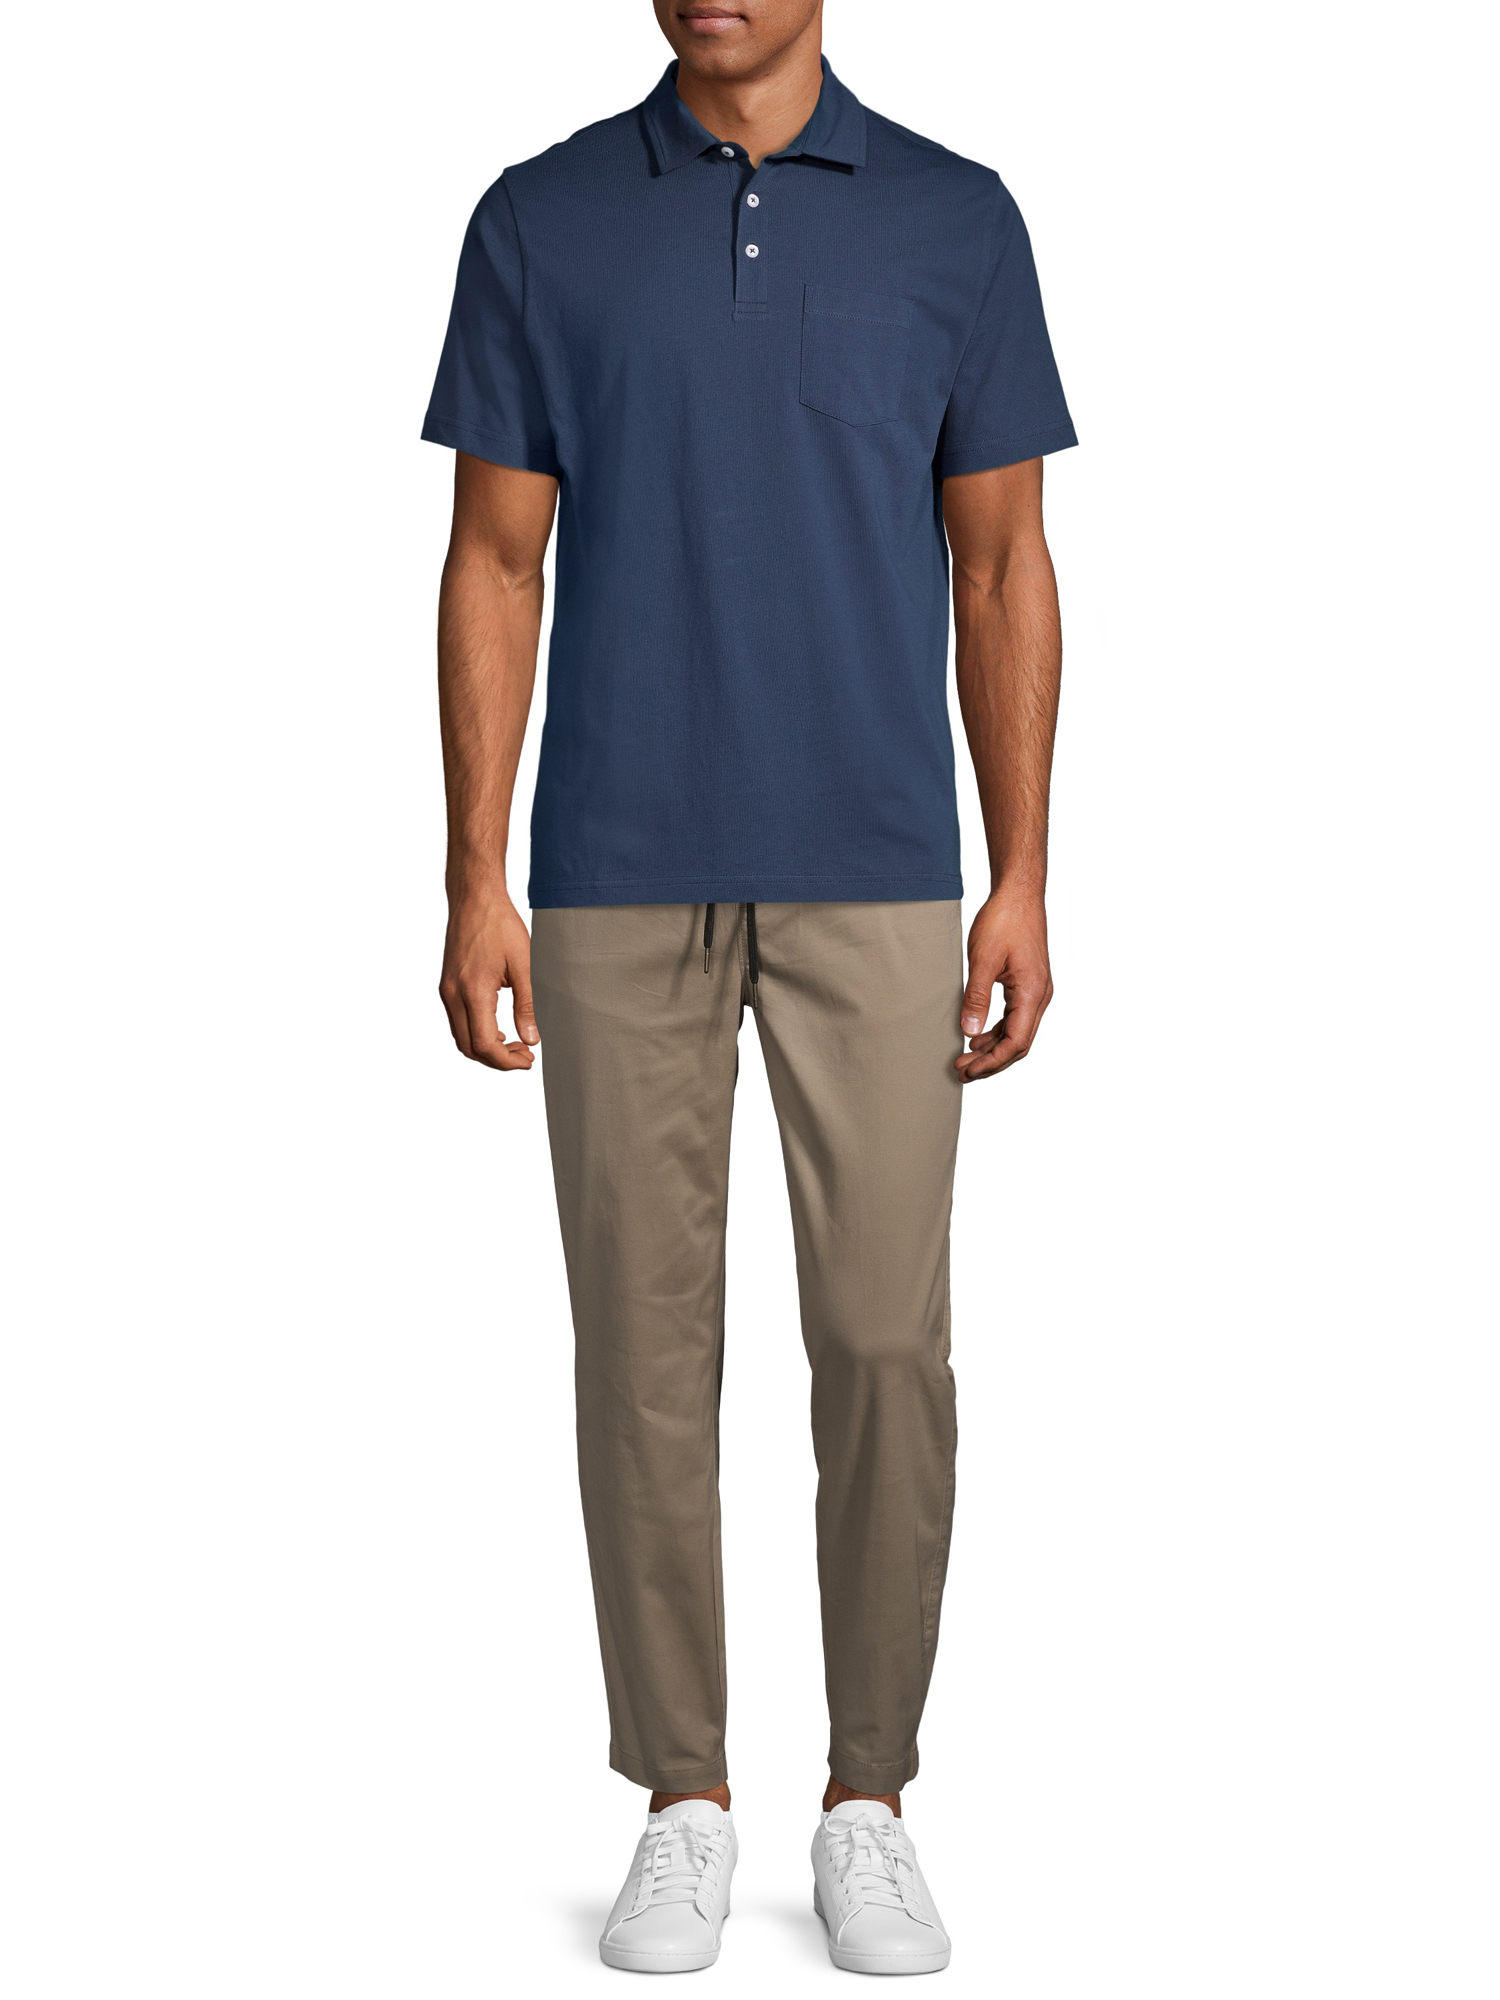 George Men/'s and Big Men/'s Solid Jersey Pocket Polo Shirt B3 Size 3XL